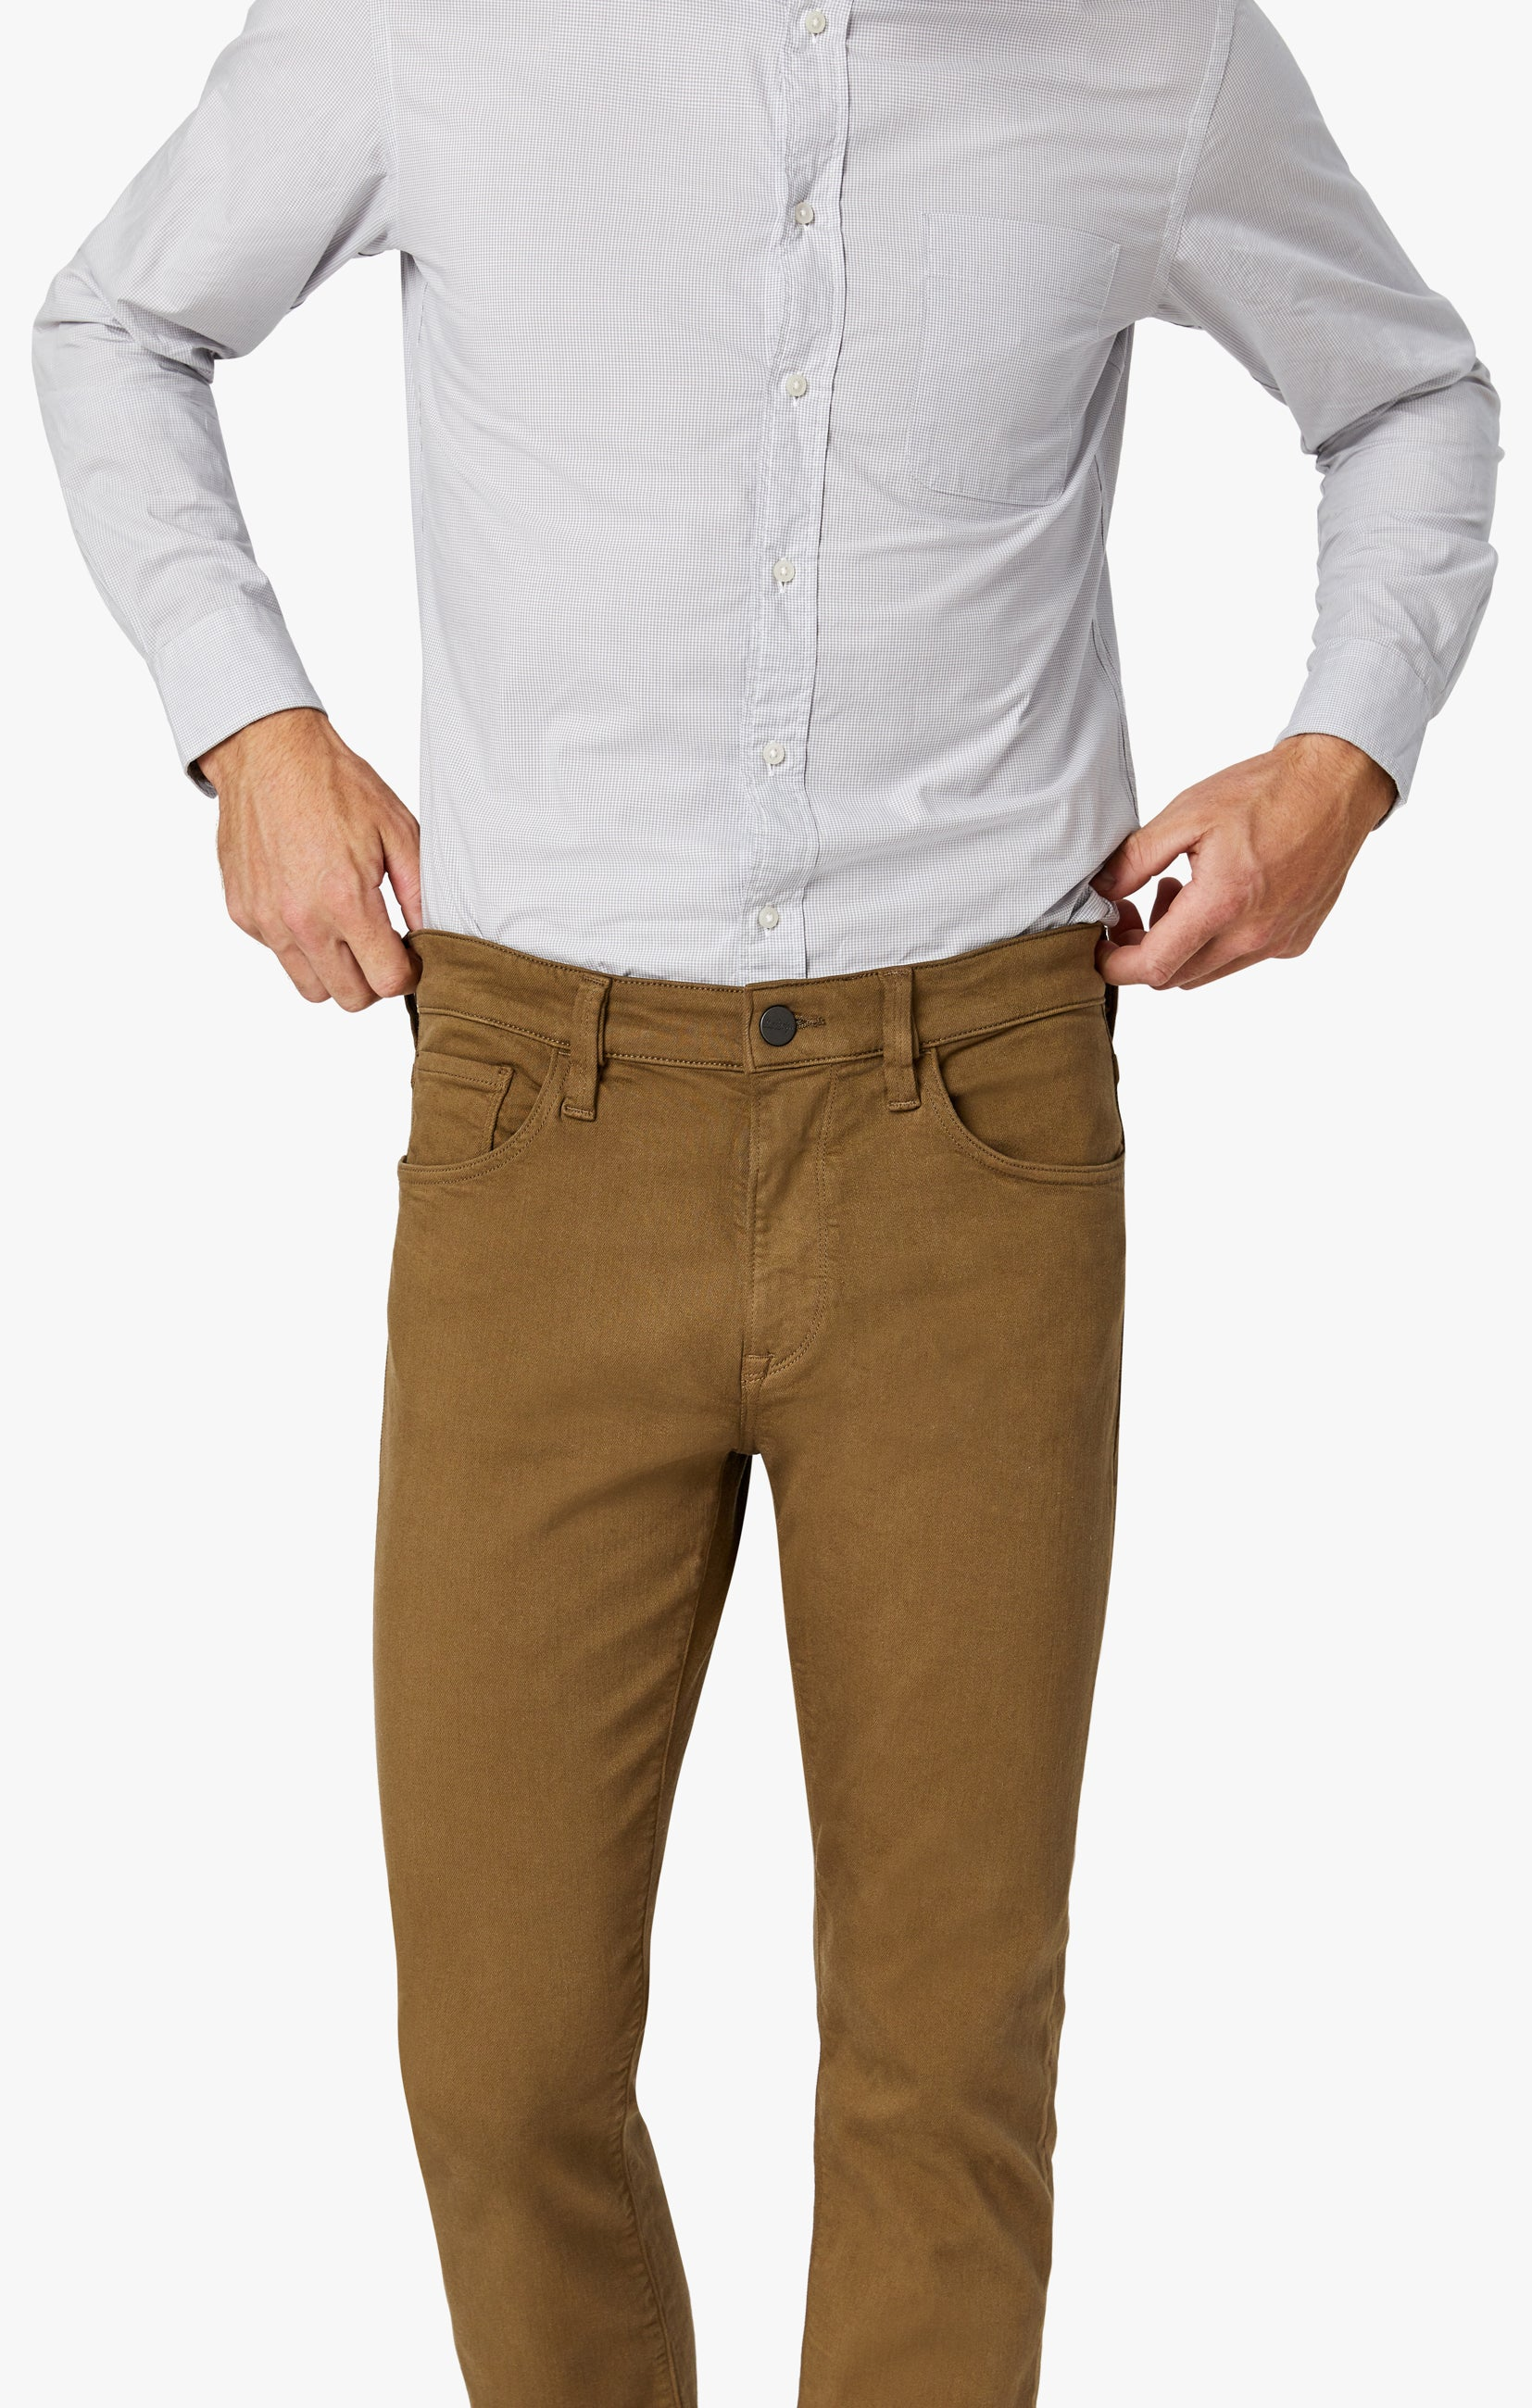 Charisma Relaxed Straight Pants in Tobacco Comfort Image 6